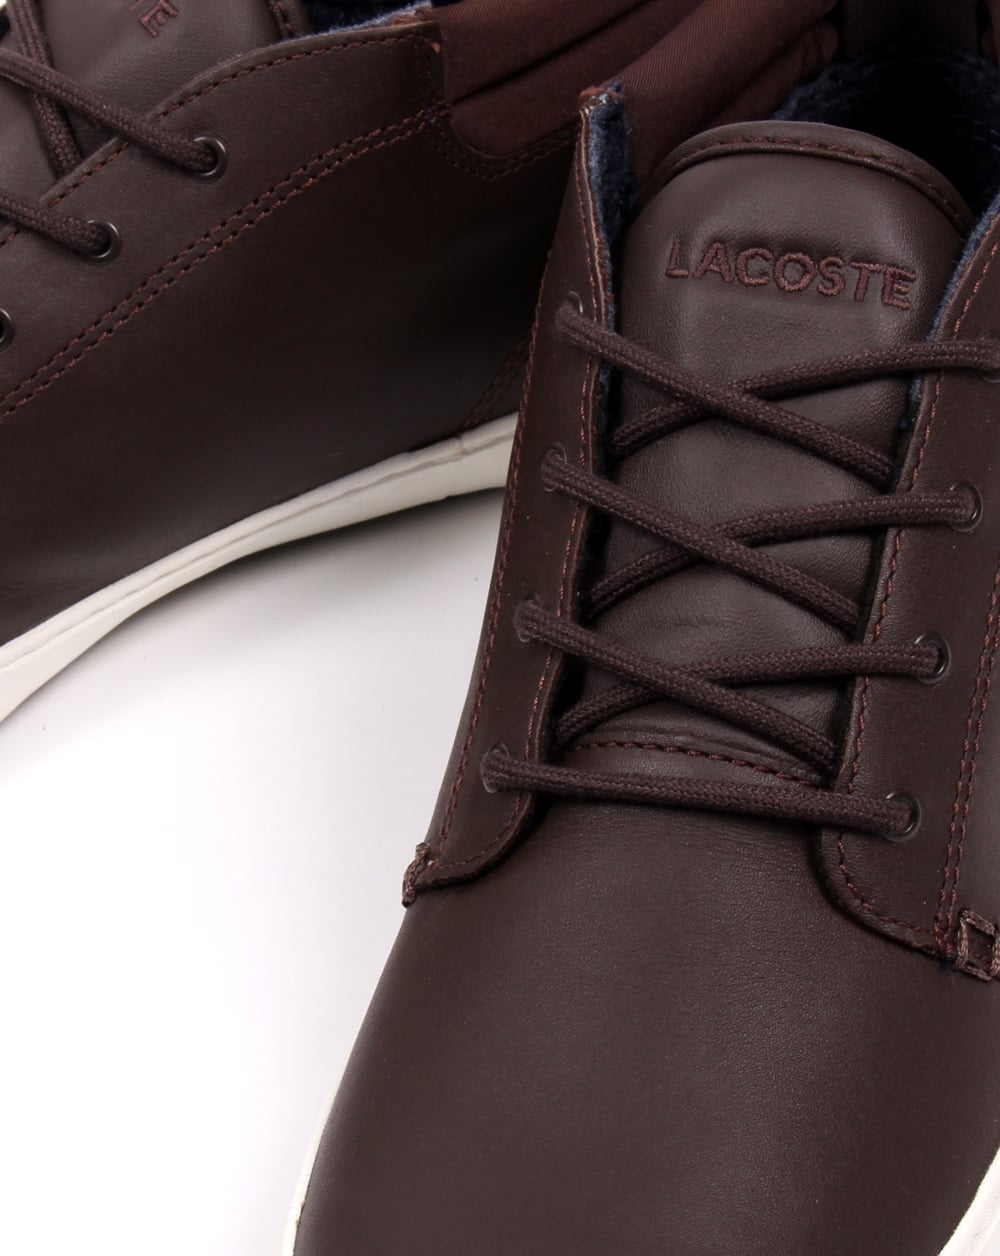 8e1e32709 Lacoste Ampthill Terra Boots Brown Leather